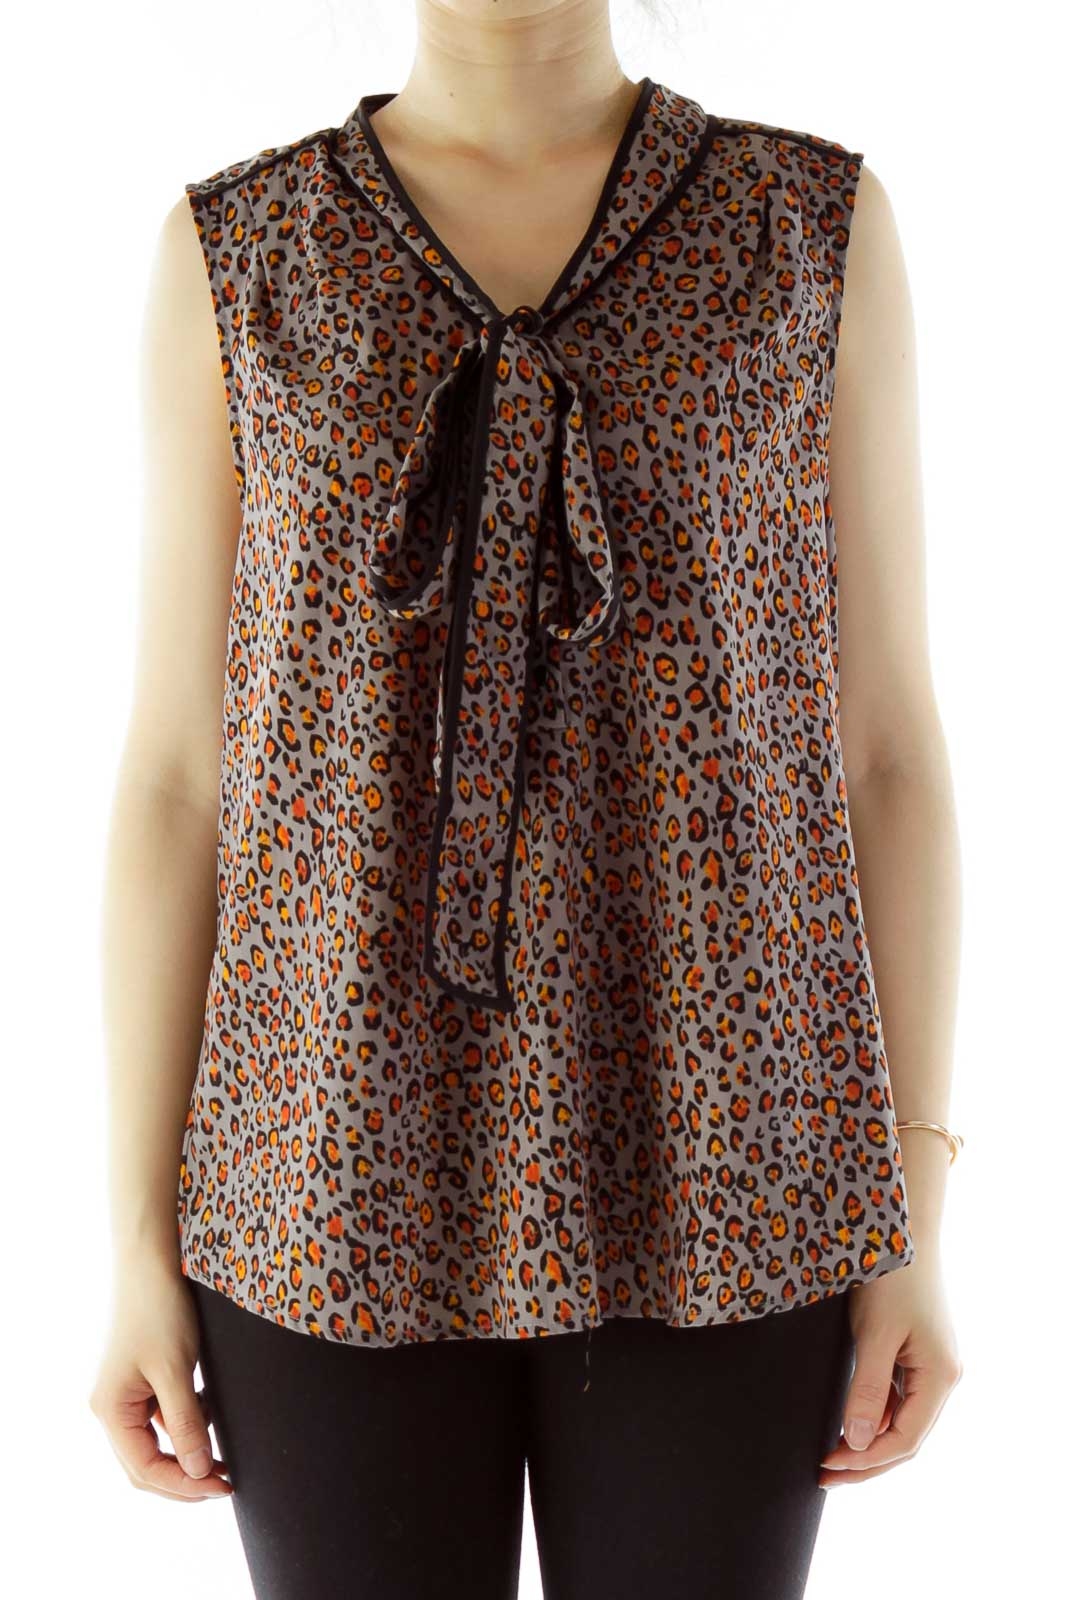 Gray Leopard Sleeveless Blouse With Sash Detail Front